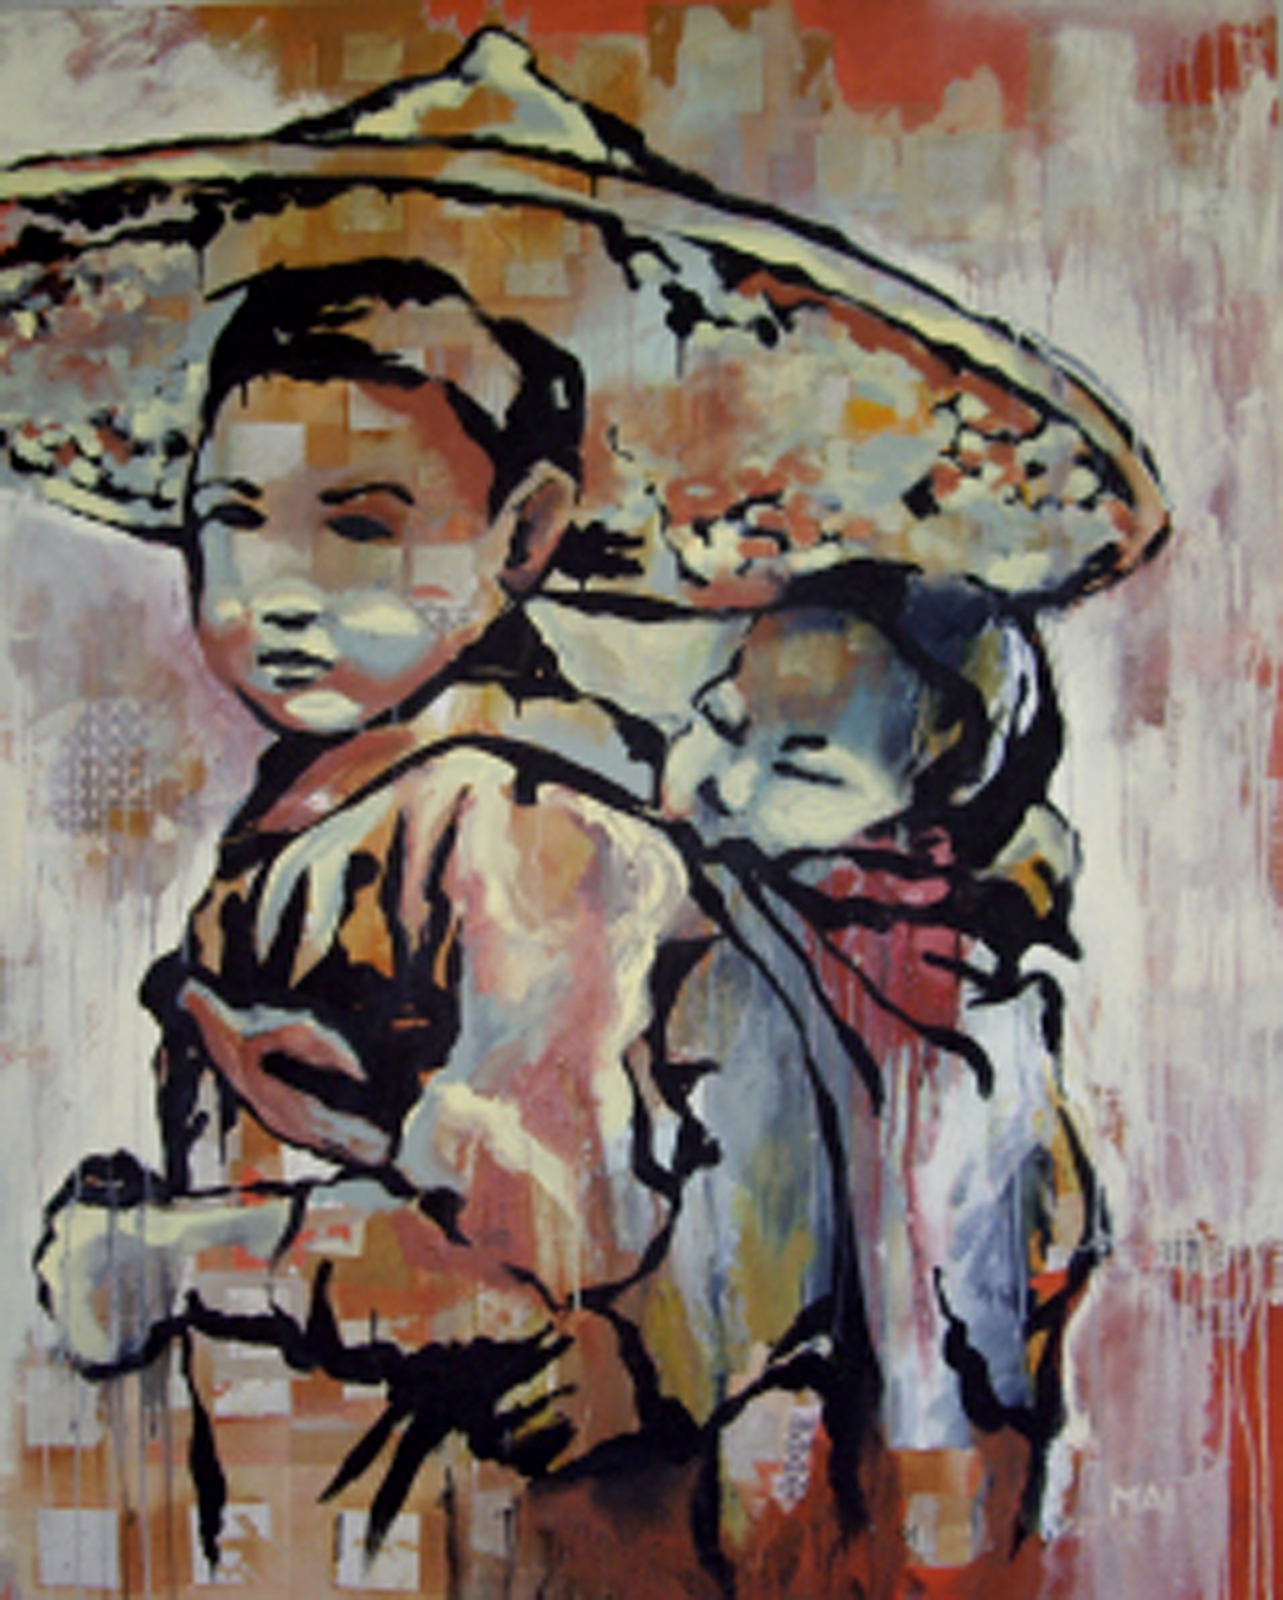 "On Our Way  , 2007, mixed on canvas, 48 x 60""  Collection of Mr. and Mrs. Christopher and Susan Ausschnitt, Naples, FL  This image, painted on a collage of joss paper (handmade paper traditionally burned in prayer in Vietnamese and Chinese cultures), was inspired by the immigrant story. On their journey to America, my husband and his family traveled through the jungles of Vietnam, Cambodia, and Thailand. During their escape from the Viet Cong, they encountered pirates and thieves, fought for their lives, and most were blessed to have survived.  I created this piece while deeply considering our profound resistance as people. Two brothers, one carrying the other. They have experienced the wages of war. They have survived. And so they move forward. We all have triumphed over past afflictions, and with each trial, we recognize our resilience and our strength to move on."